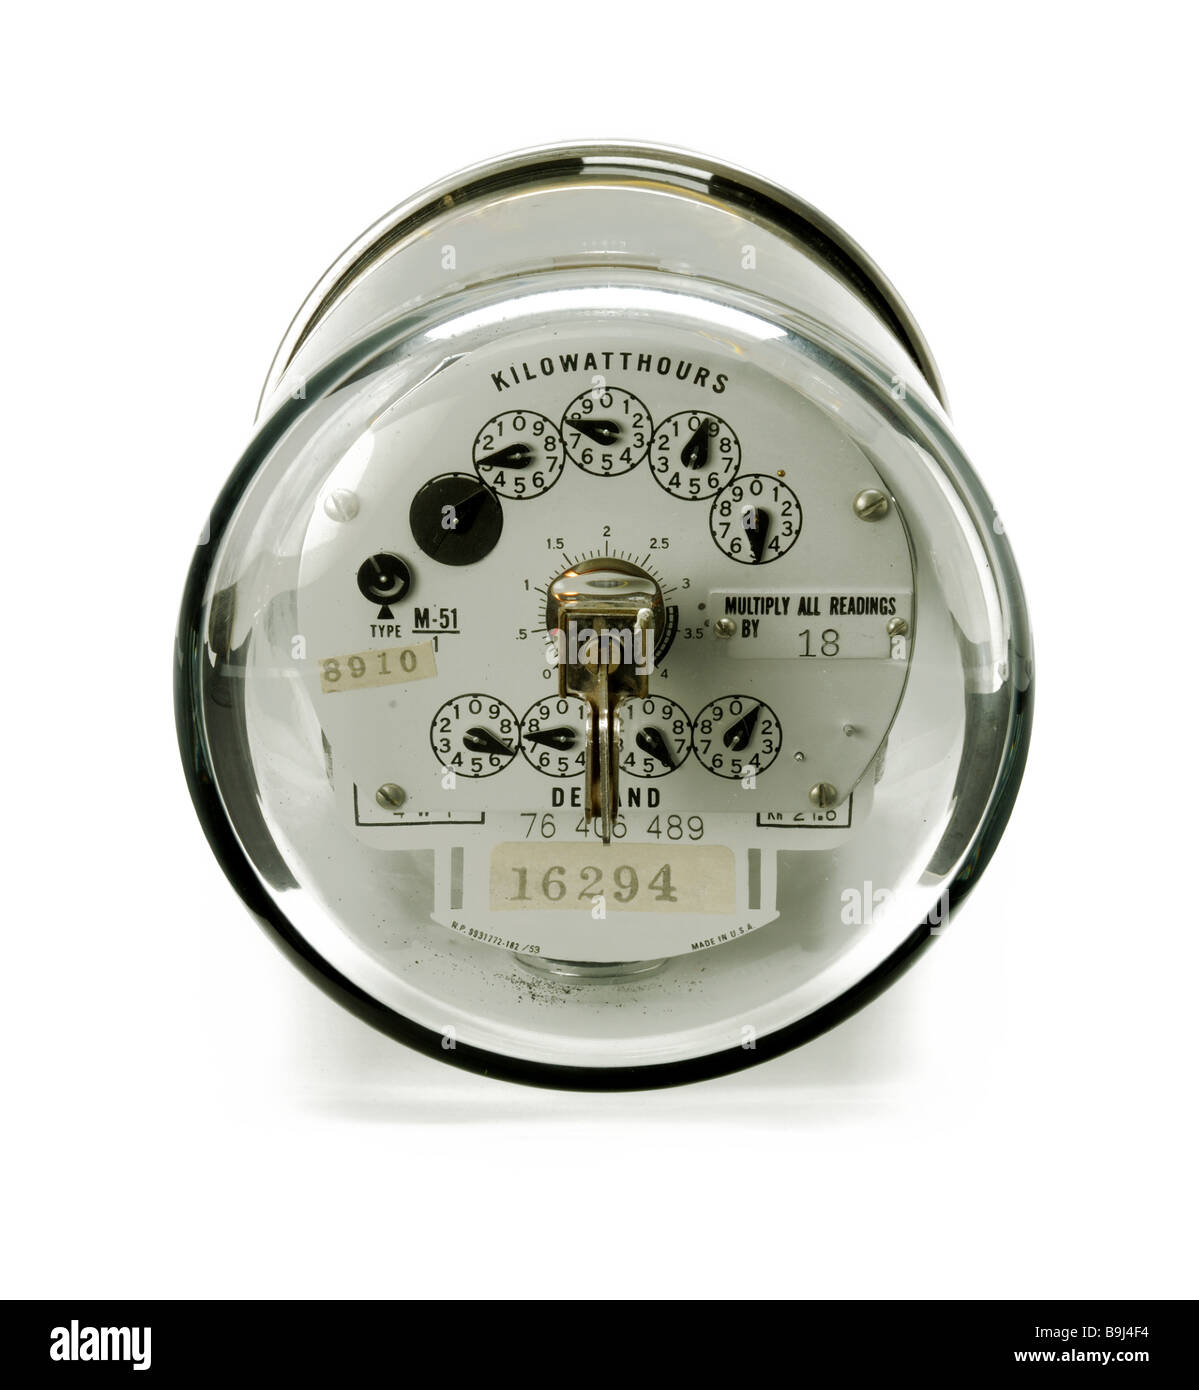 An electrical power meter seen from it's front face / end - Stock Image